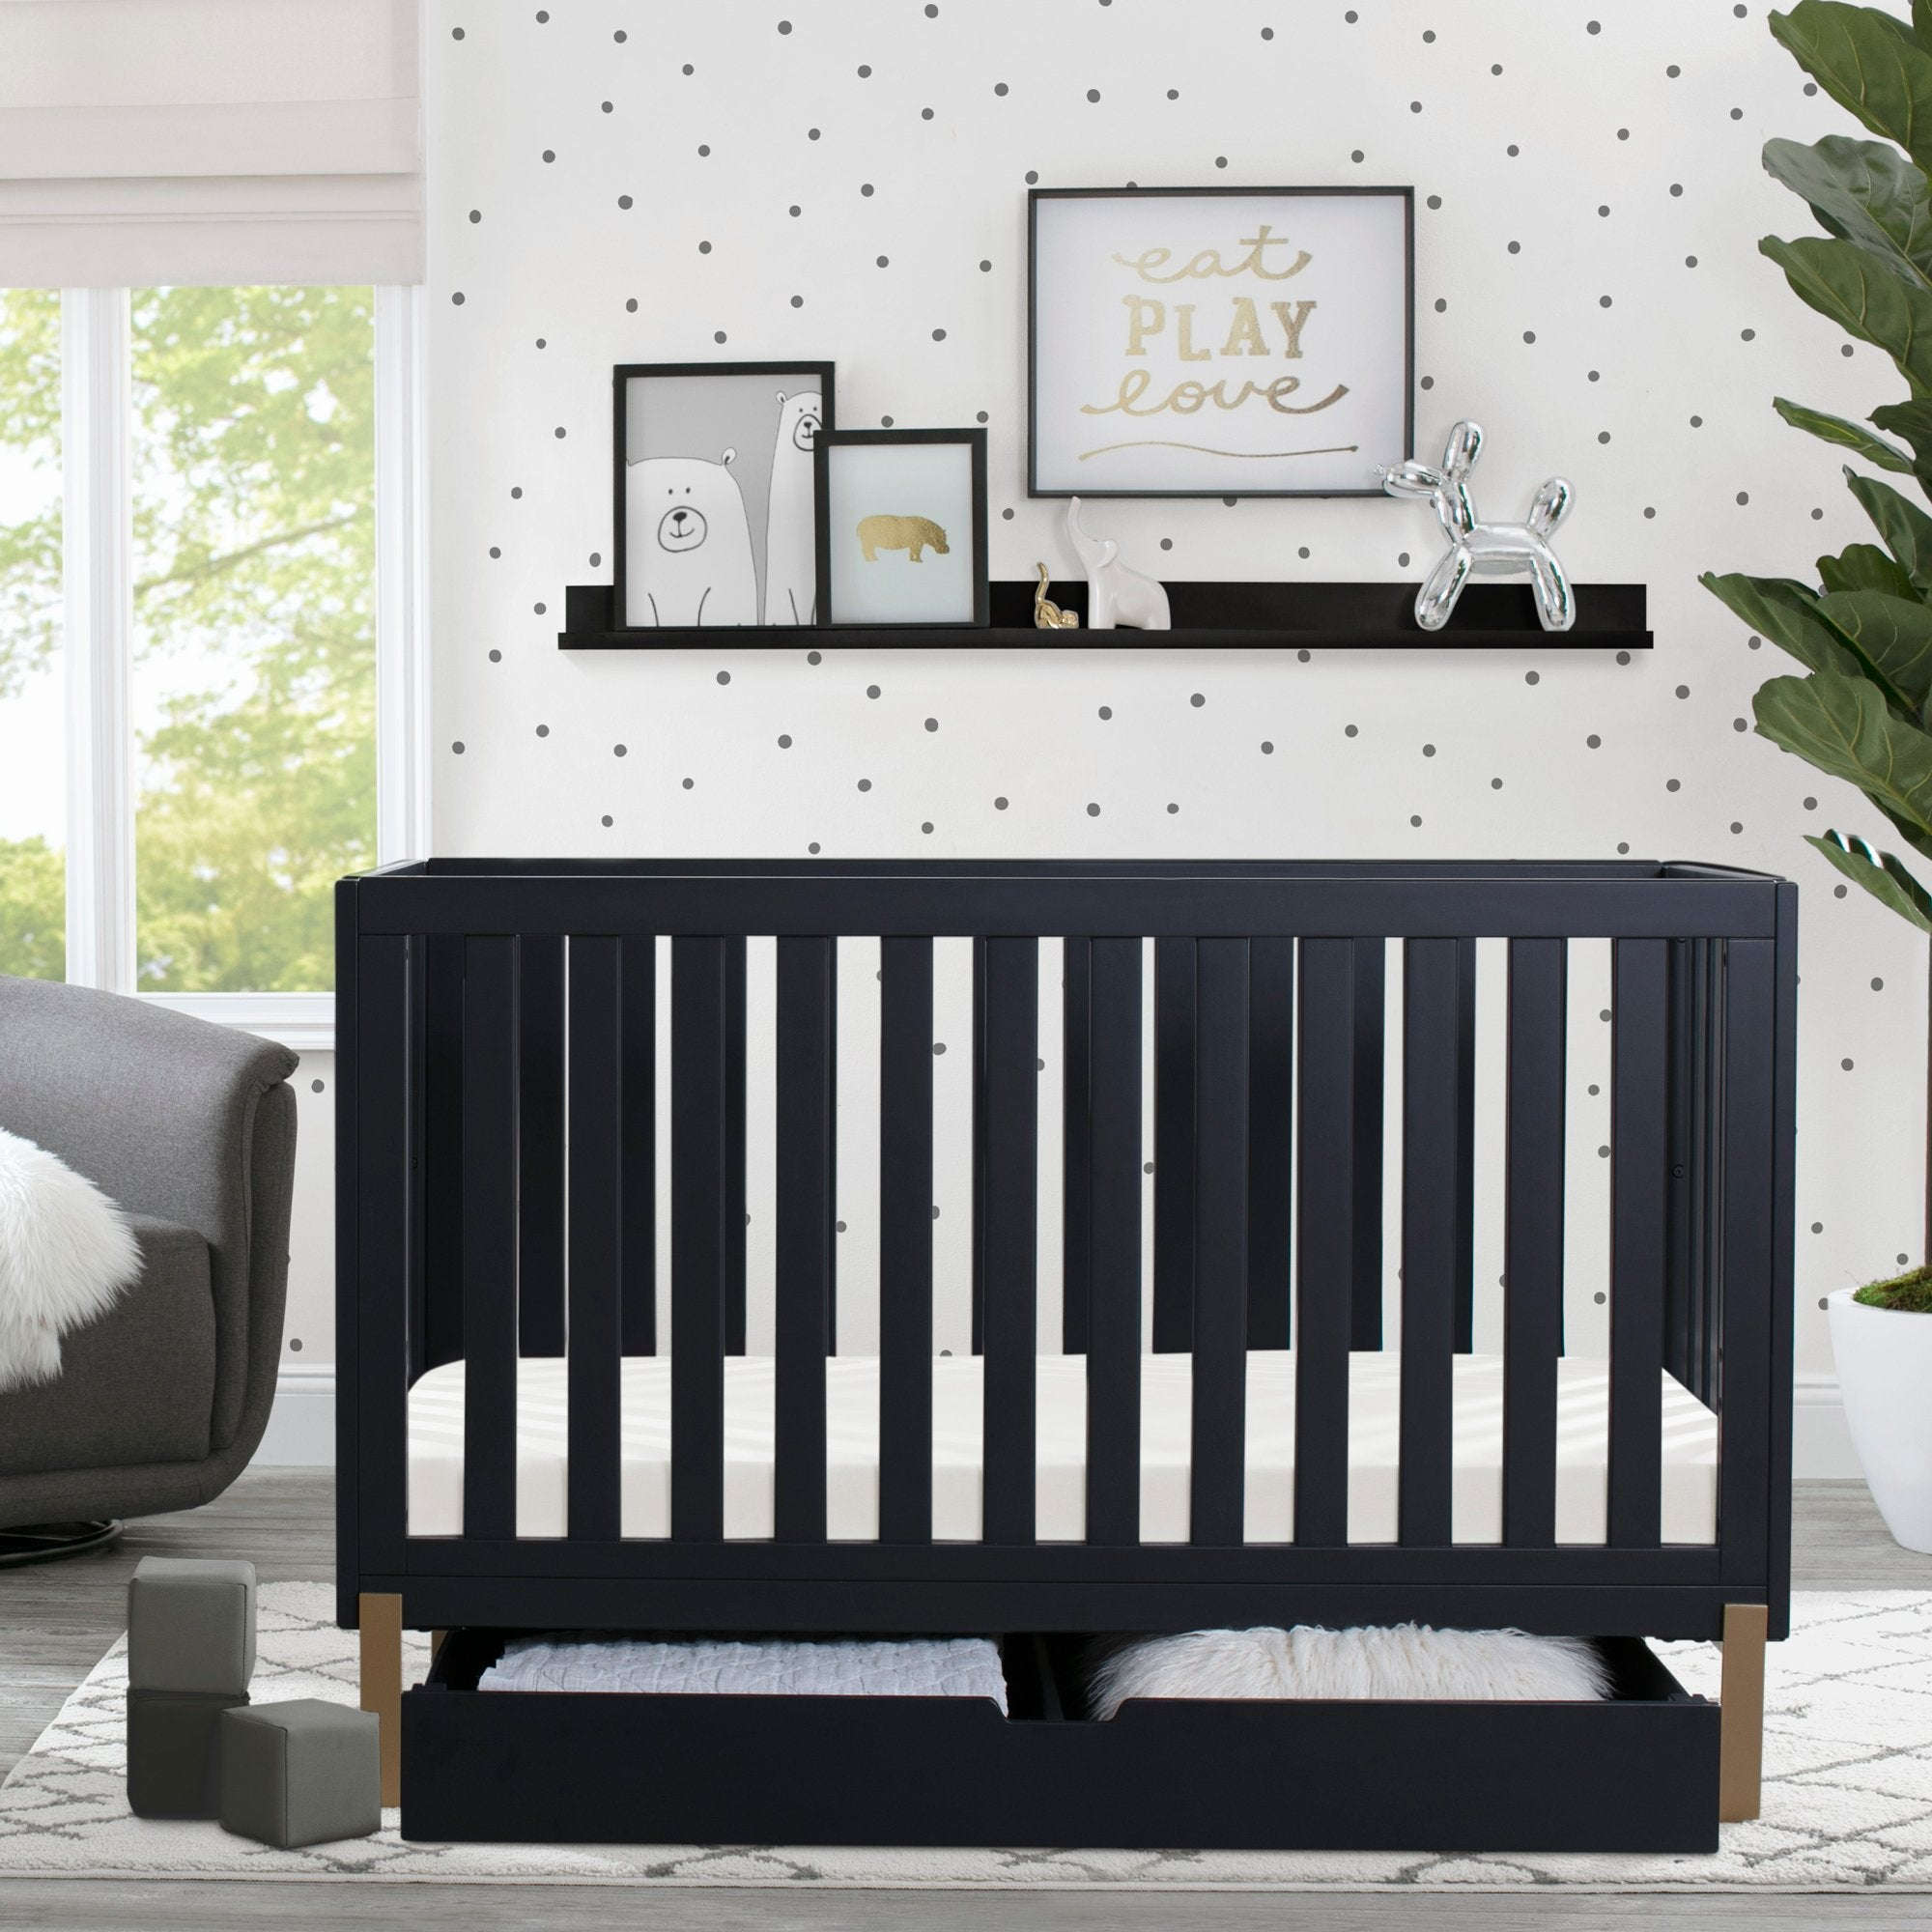 Hendrix 4-in-1 Convertible Crib + Under Crib Roll-Out Storage